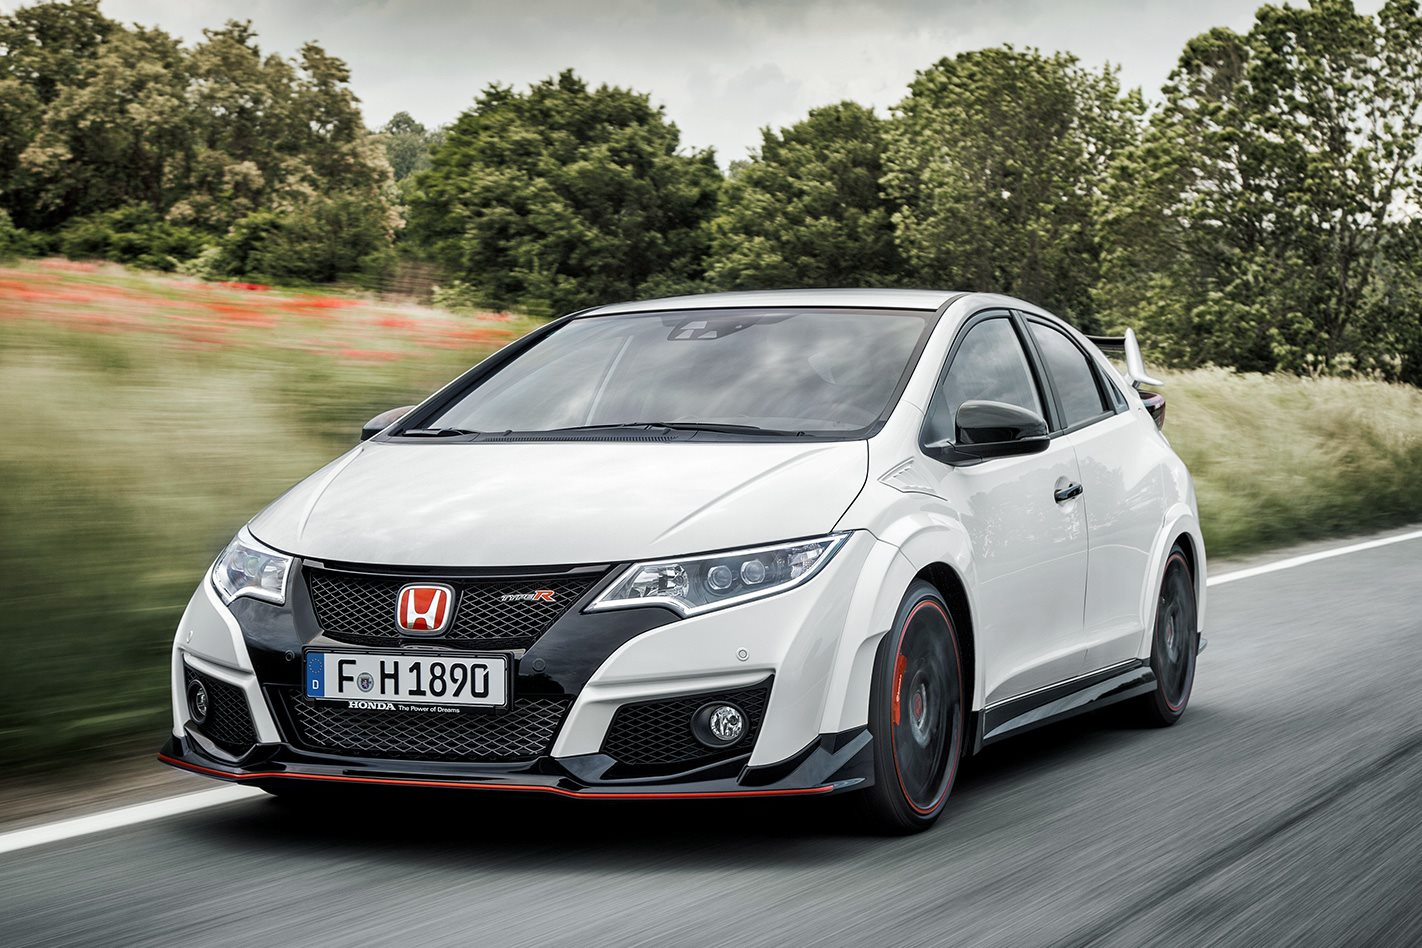 2015 Honda Civic Type-R First Drive Review